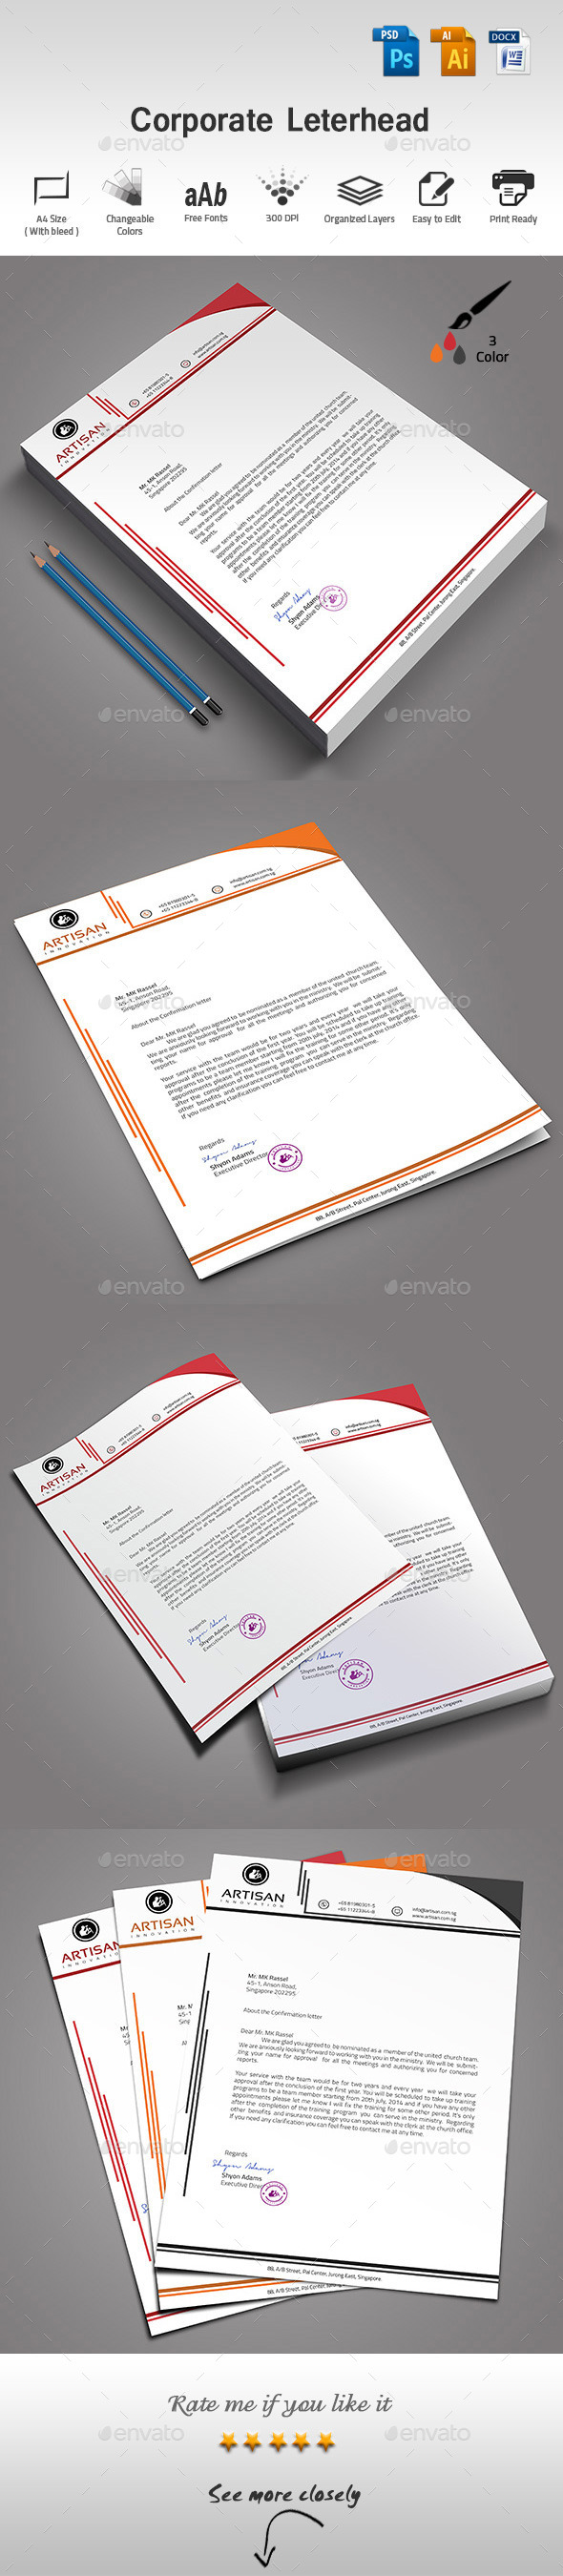 GraphicRiver Corporate Letterhead 9723315